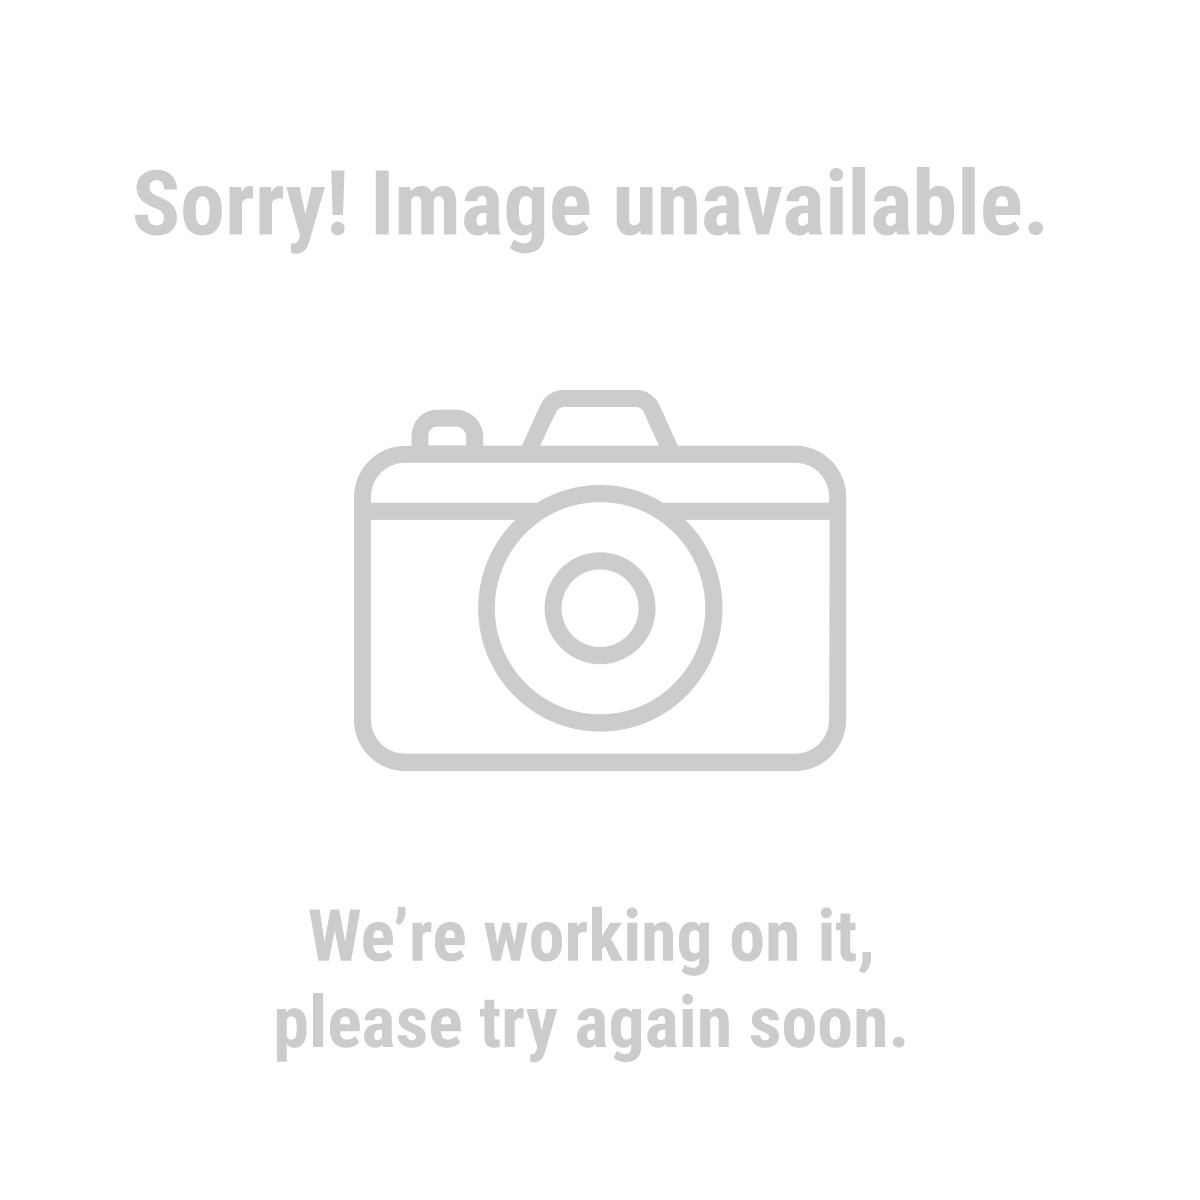 Chicago Electric Power Tools 94282 5 Gallon Wet/Dry Vacuum Blower